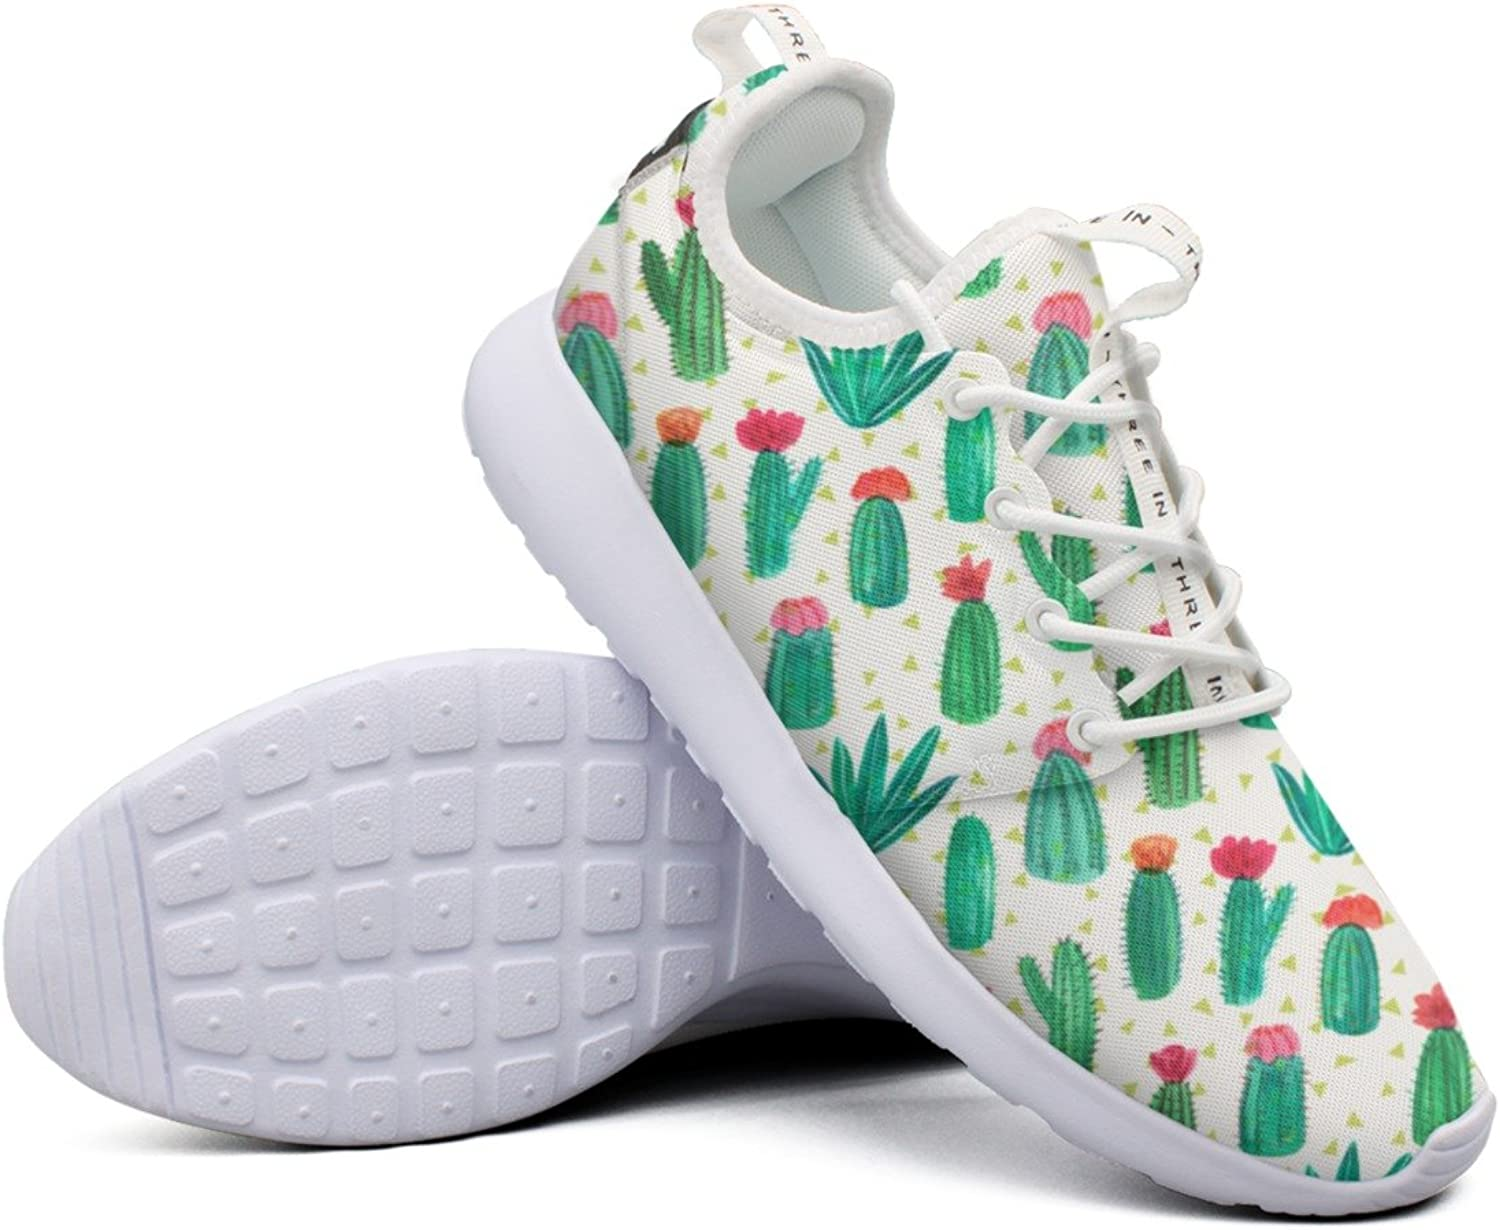 Women Girls The Flowering Cactus colorful Printing Novelty Casual Running shoes